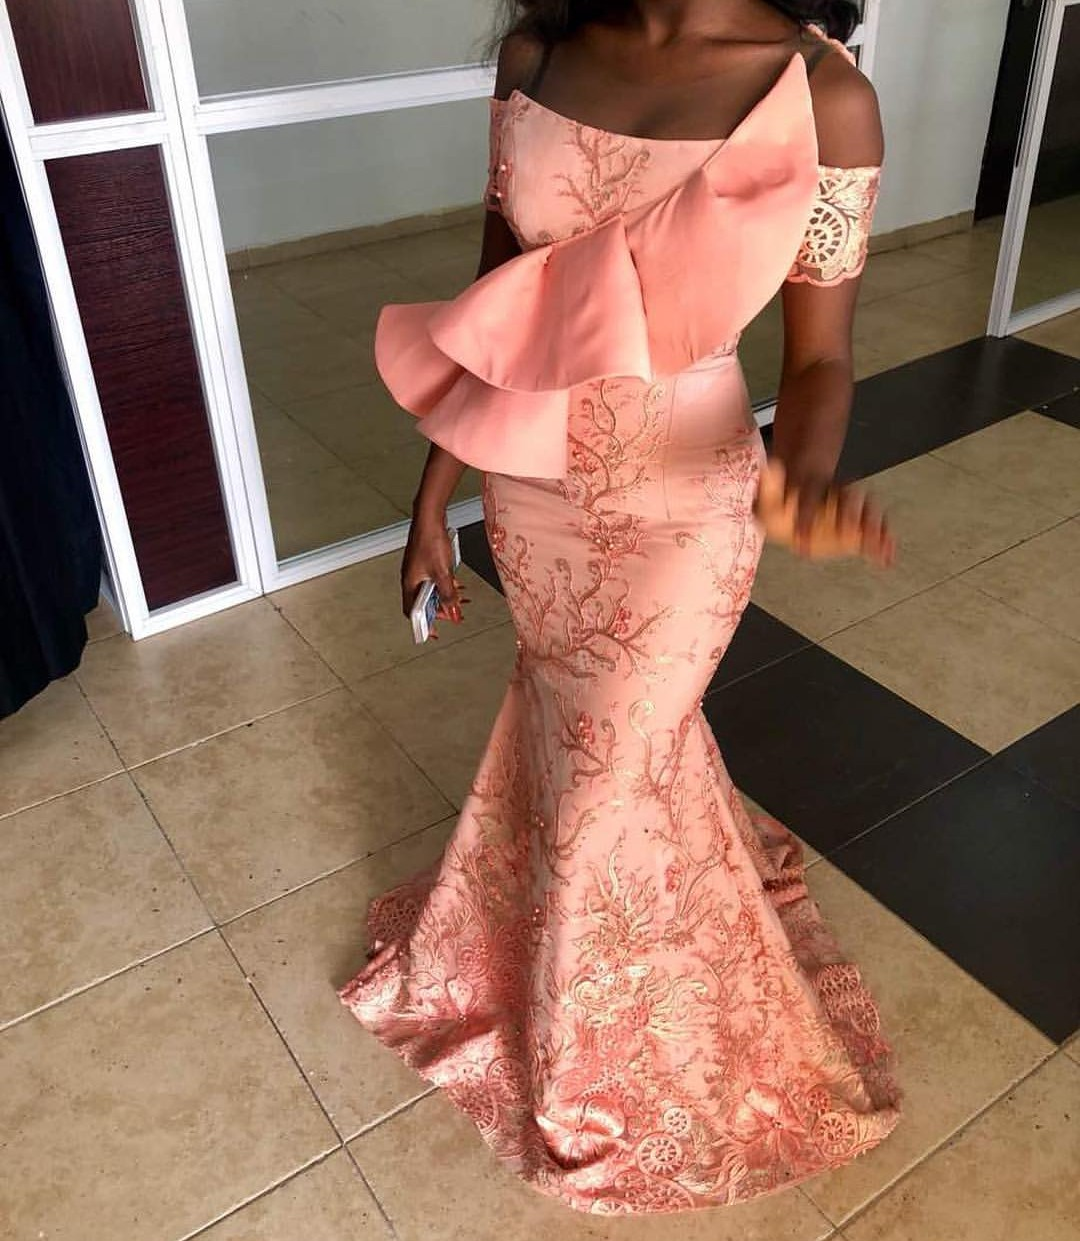 2020 SWEET ASO-EBI STYLES, FASHIONABLE STYLES FOR IMPORTANT EVENTS ... 6